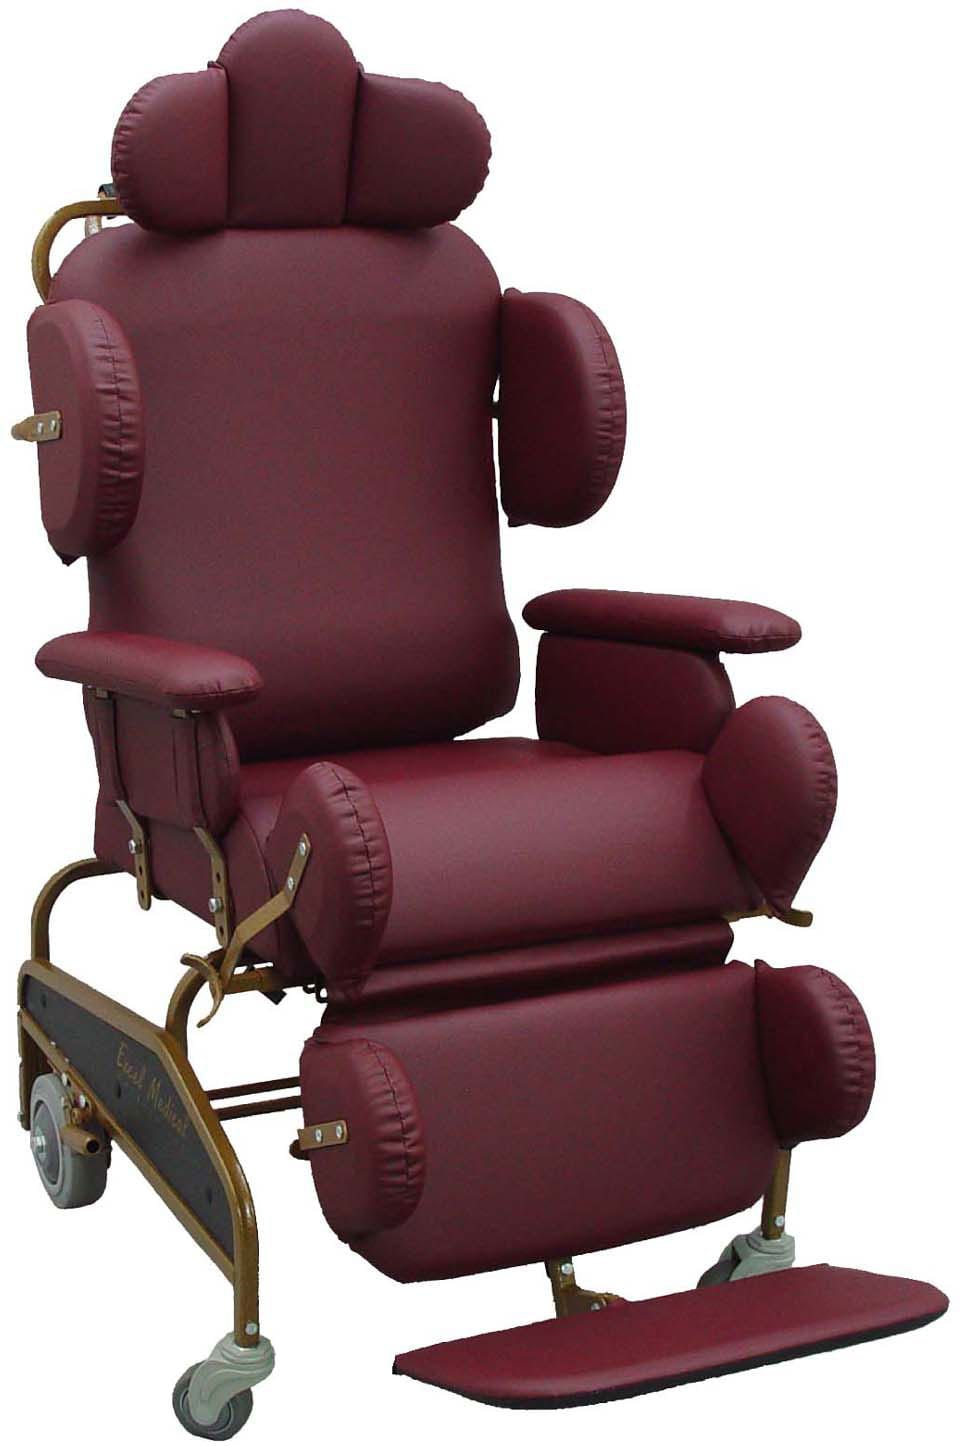 geriatric chair, royal kliner chair, excel medical chair, adjustable geriatric chair